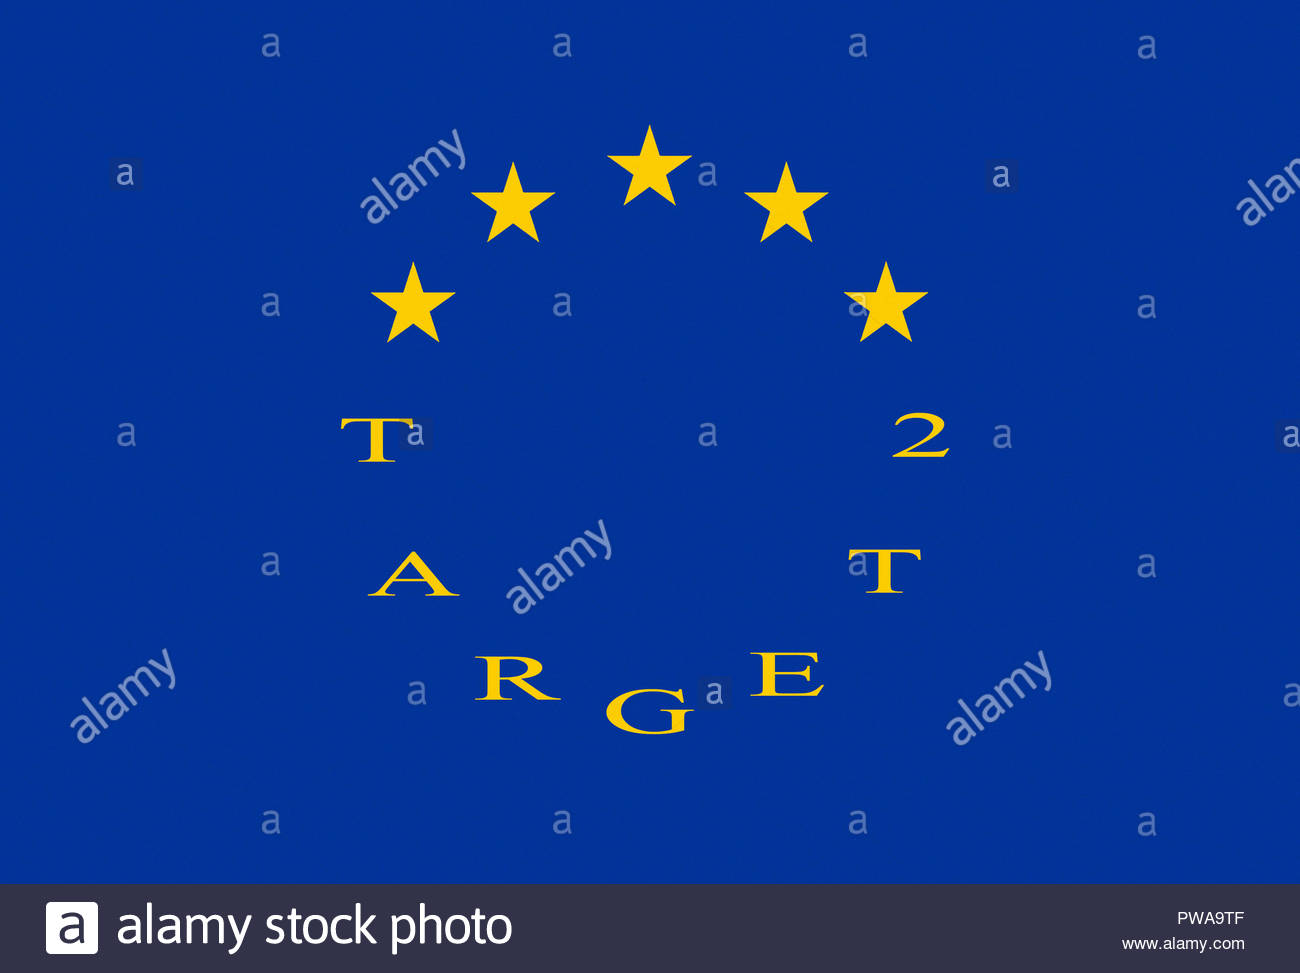 The letters of the two words - Target 2 - representing the yellow stars of the European flag. - Stock Image